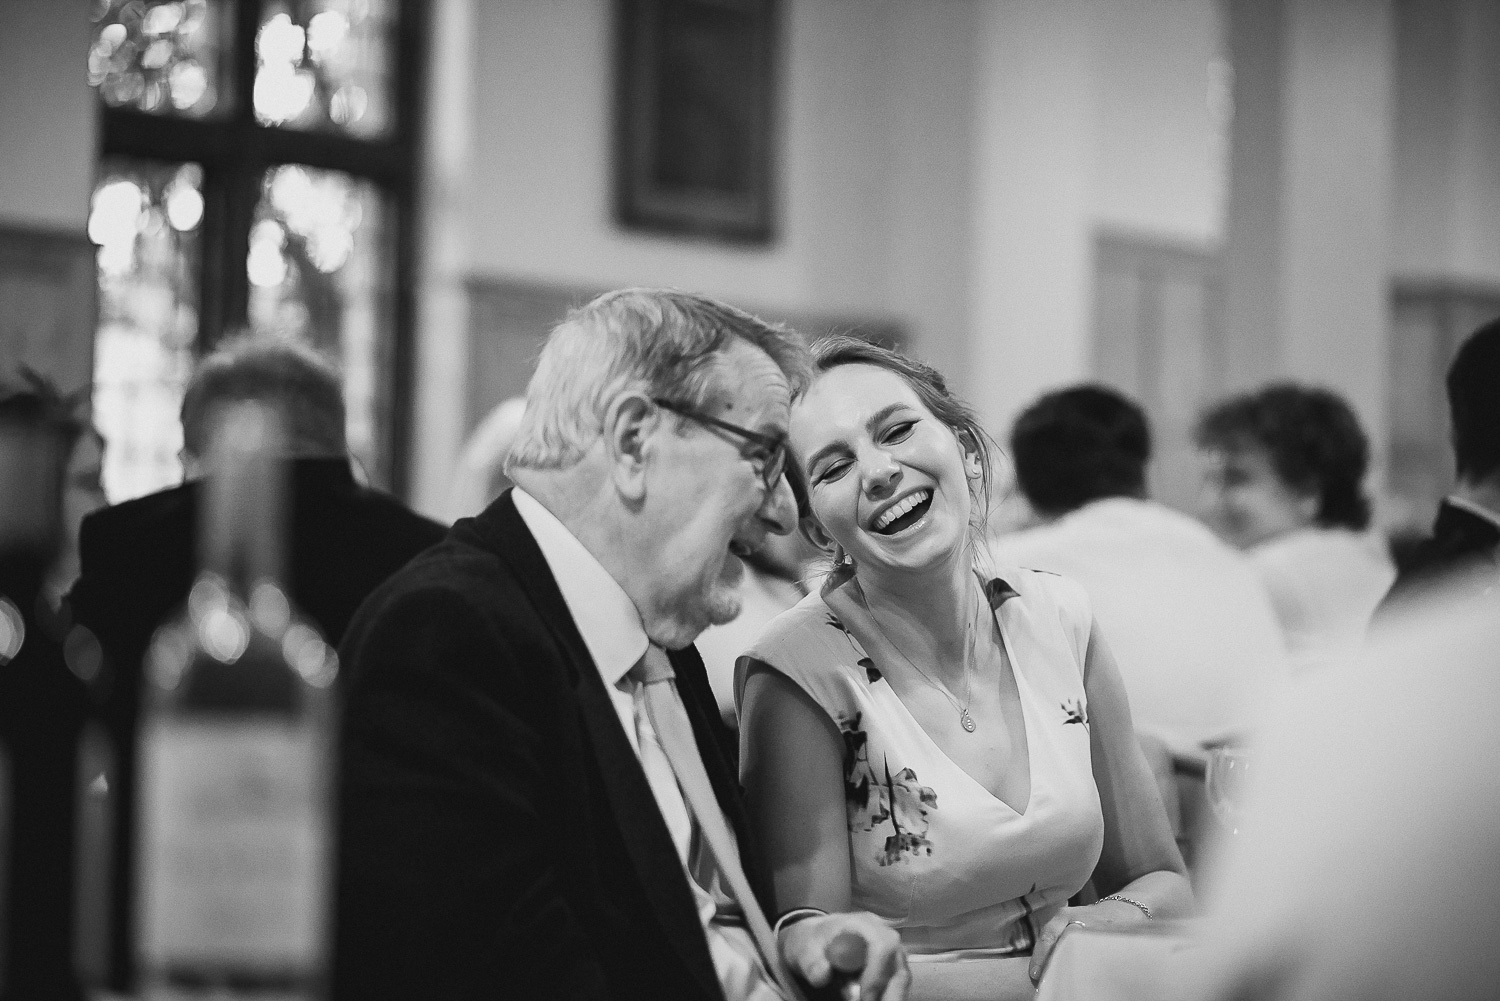 wedding-photographer-cardiff-university-41.jpg